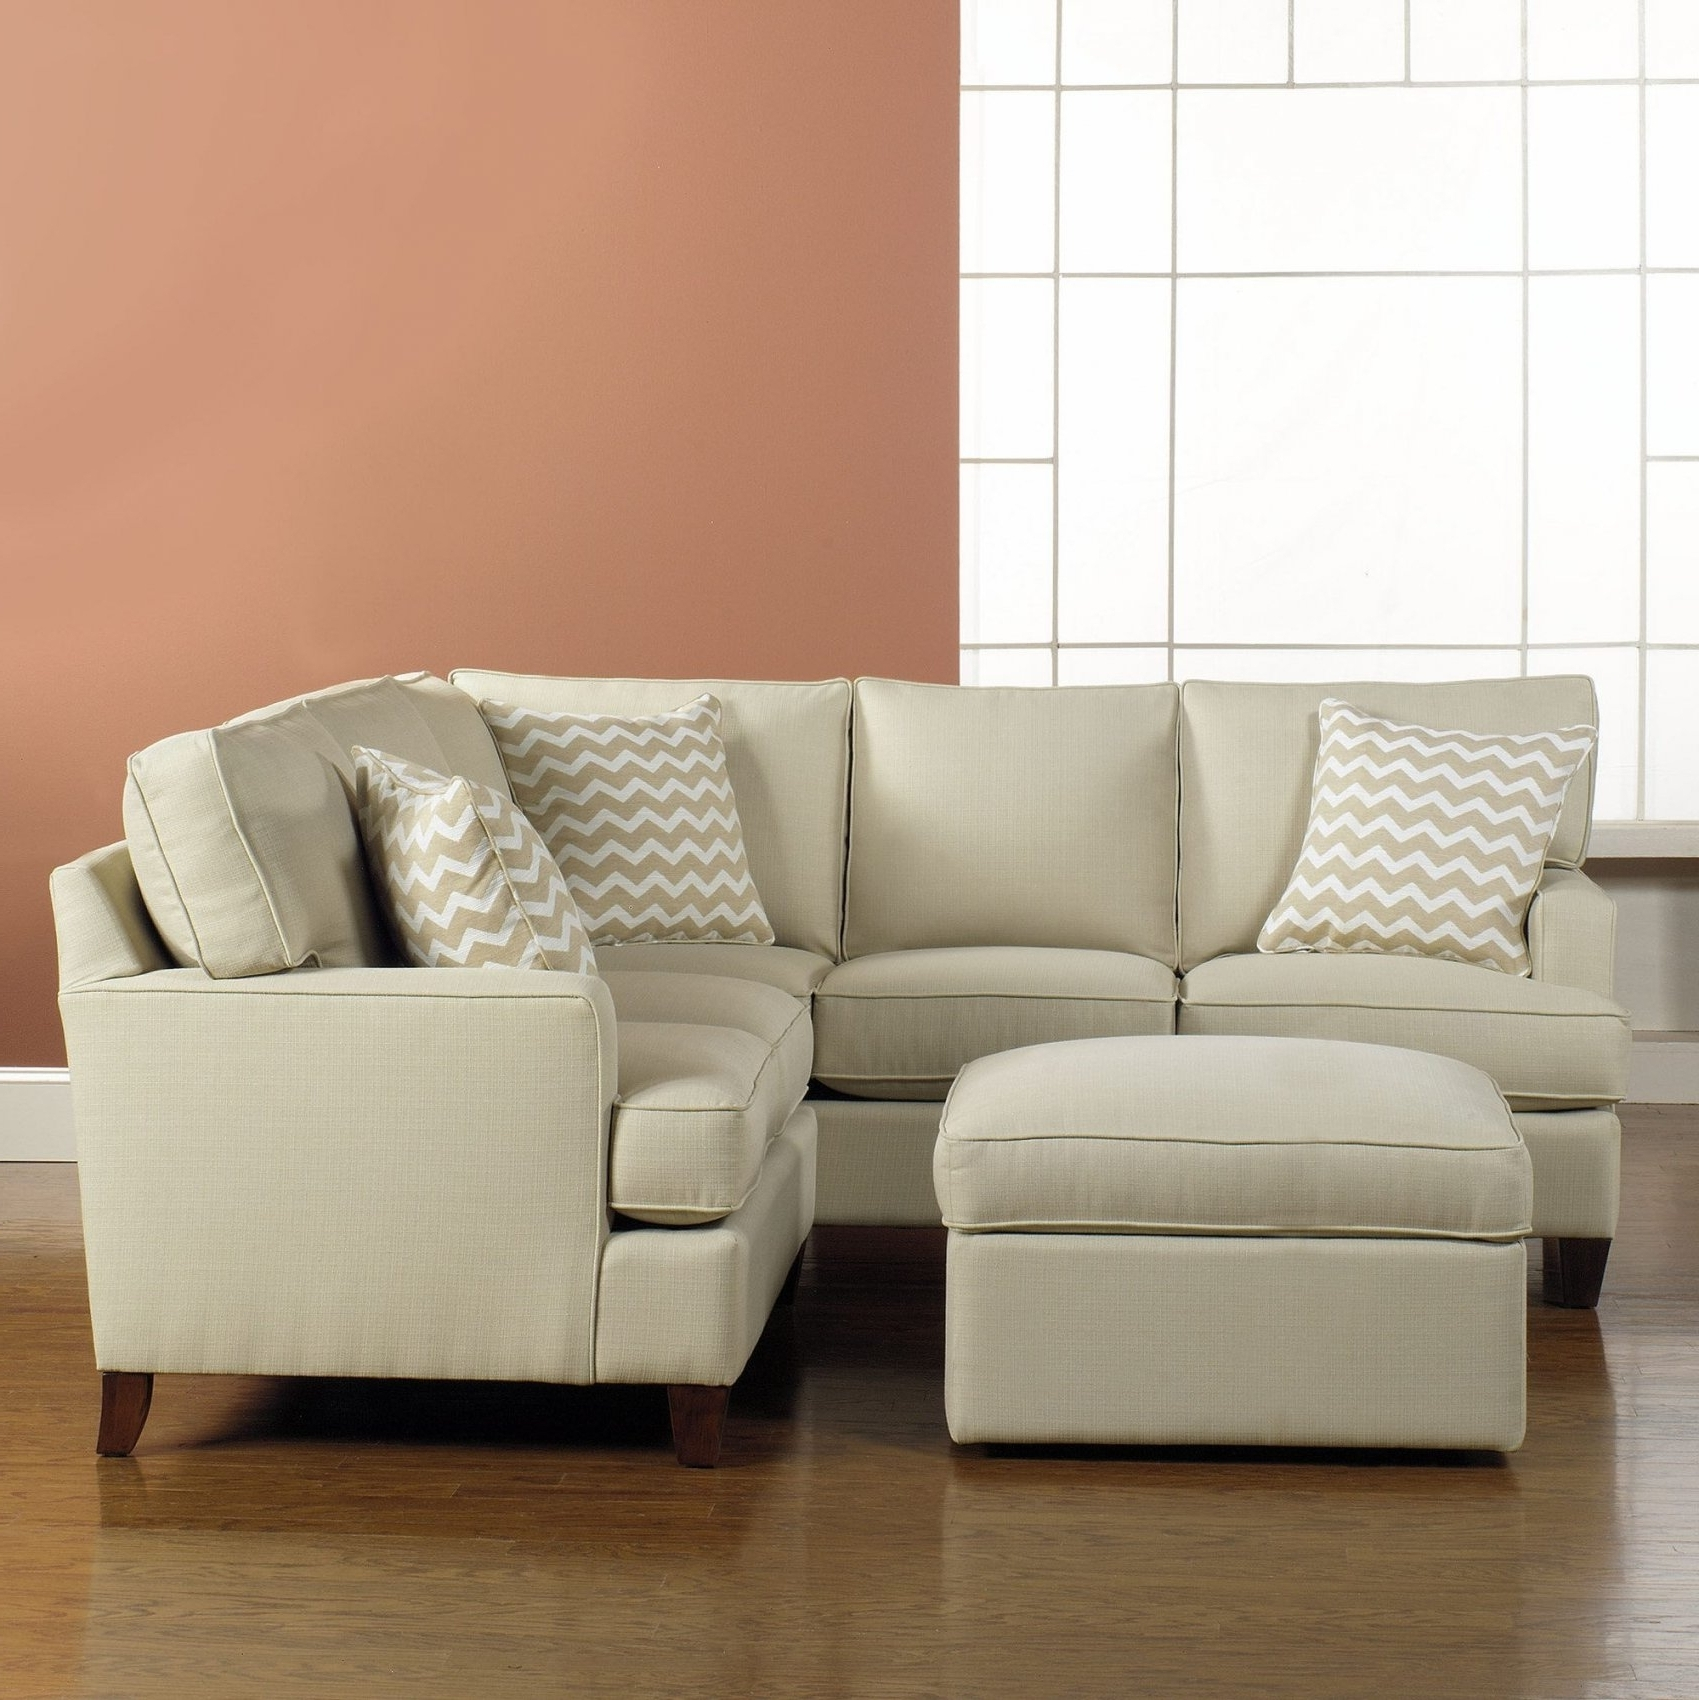 Sectional Sofas For Small Areas Pertaining To 2019 Sectional Sofa For Small Spaces 94 In Living Room Sofa With (View 3 of 20)